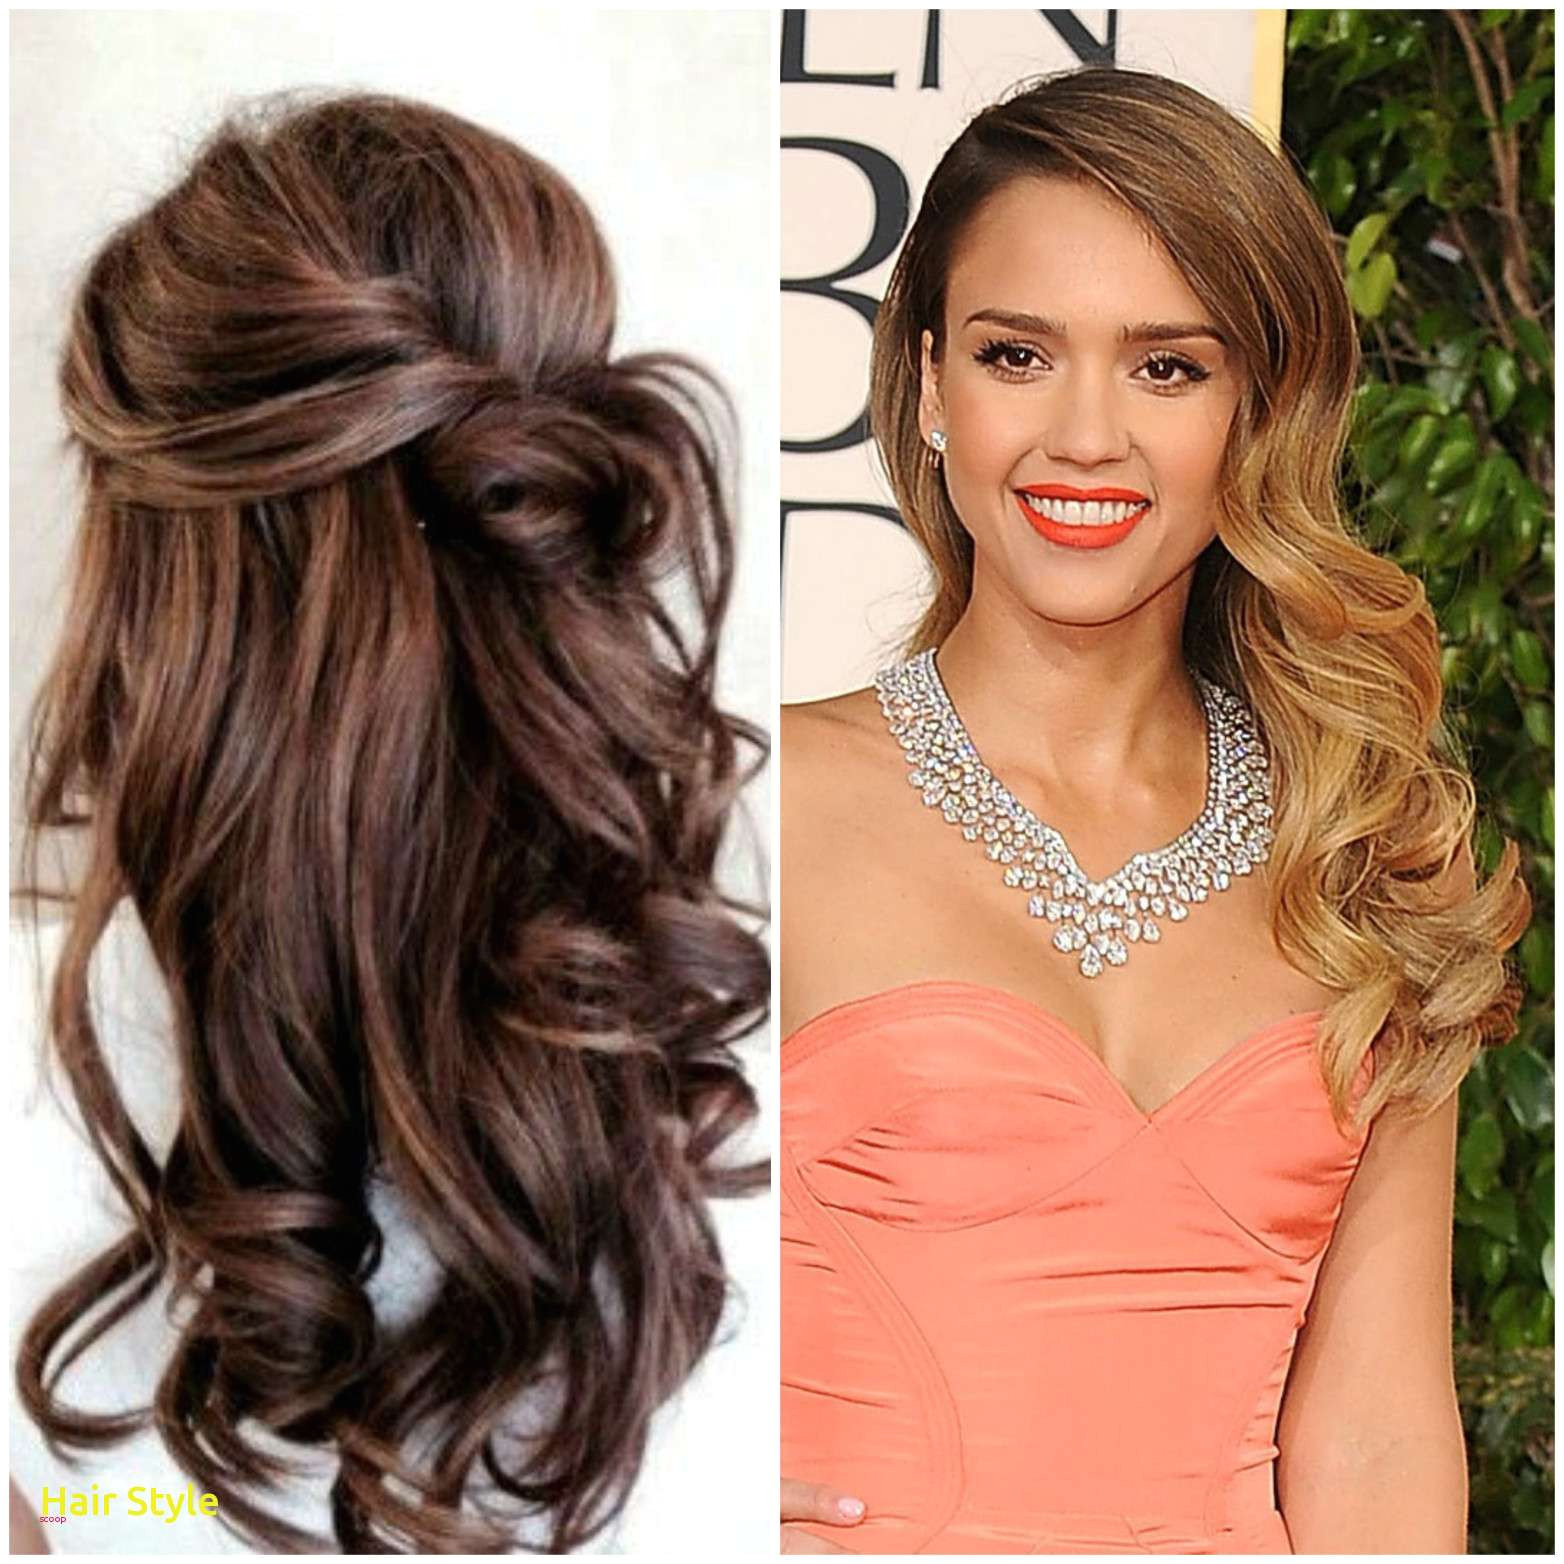 hair coloring inspirational using excellent inspirational hairstyles for long hair 2015 luxury i pinimg 1200x 0d